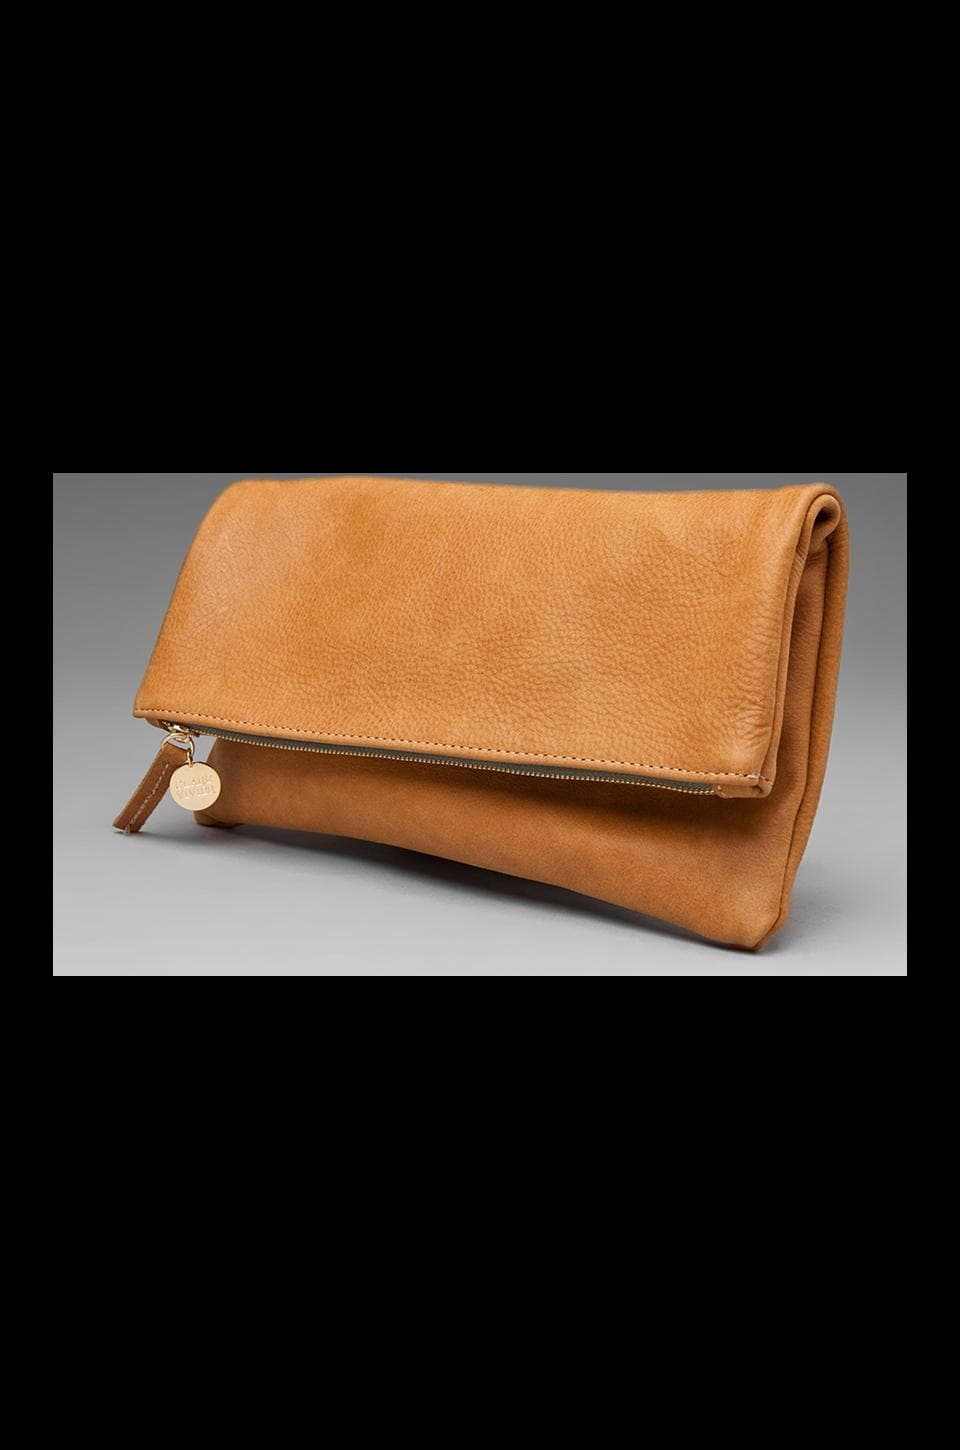 Clare V. Foldover Clutch (green zipper) in Camel